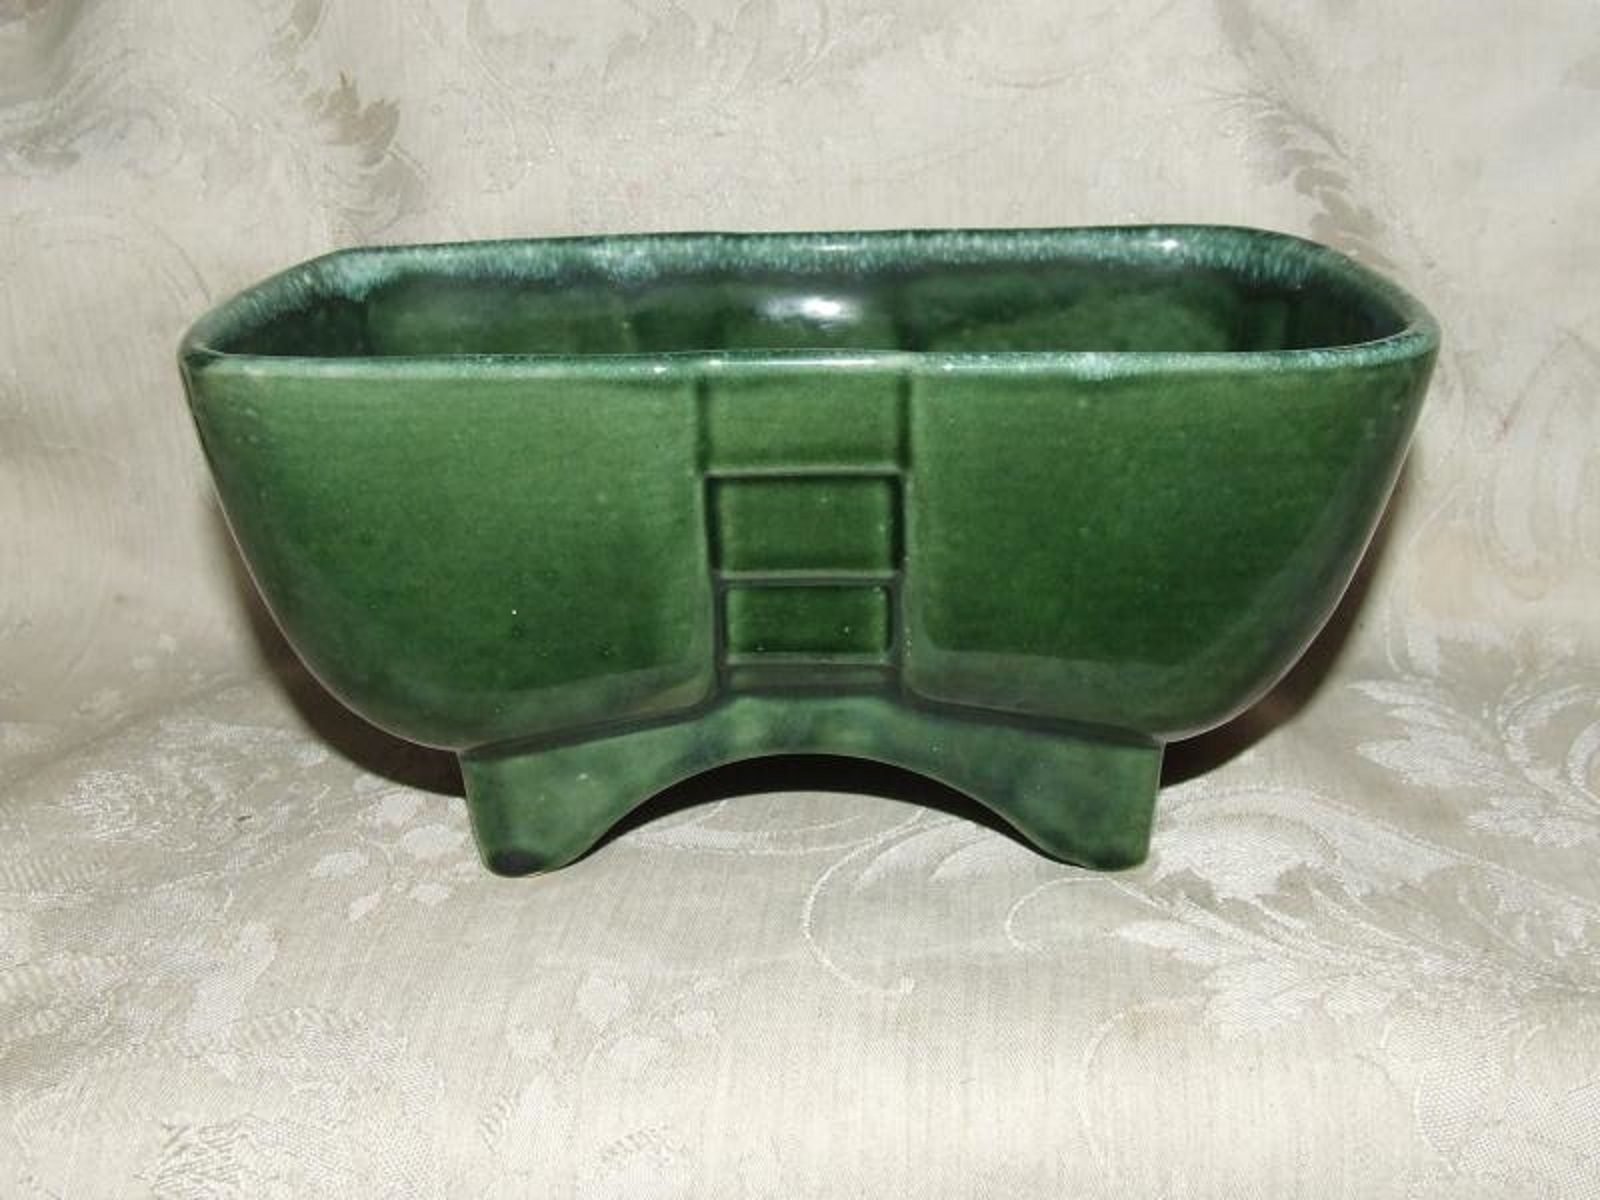 Primary image for Vintage 1950s California Pottery #778 USA Green Drip Planter Oriental Pagoda